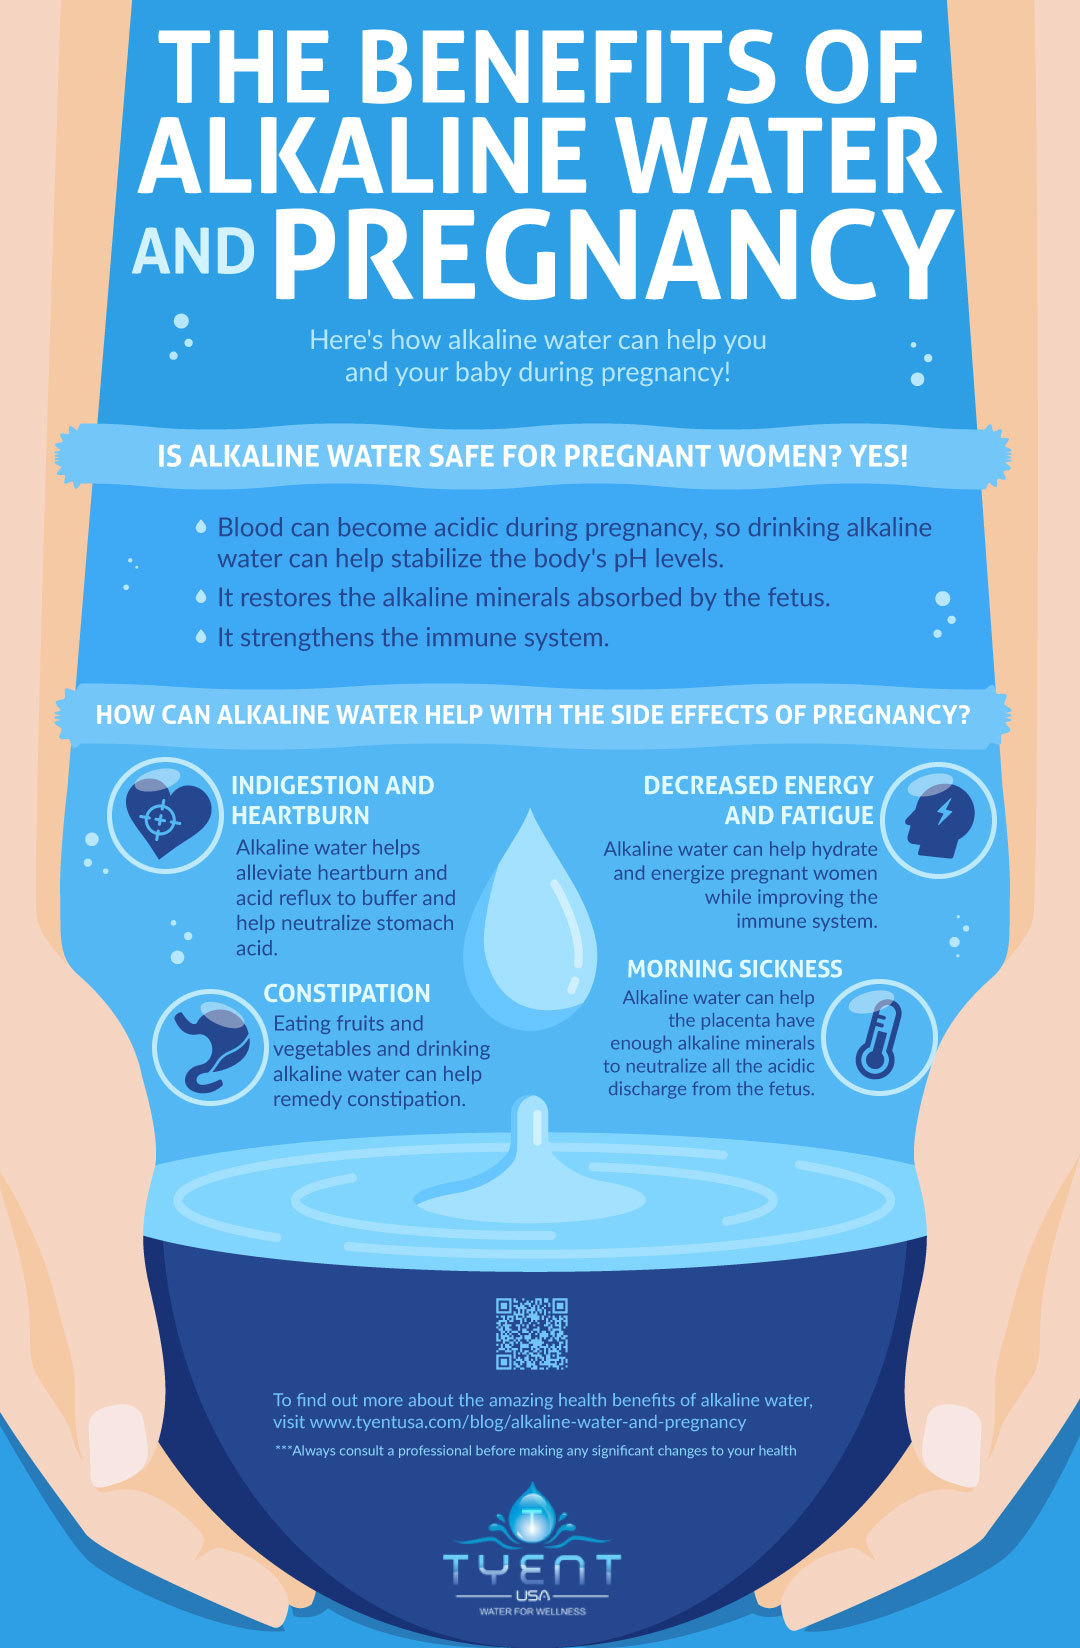 Benefits of Alkaline Water And Pregnancy [INFOGRAPHIC]